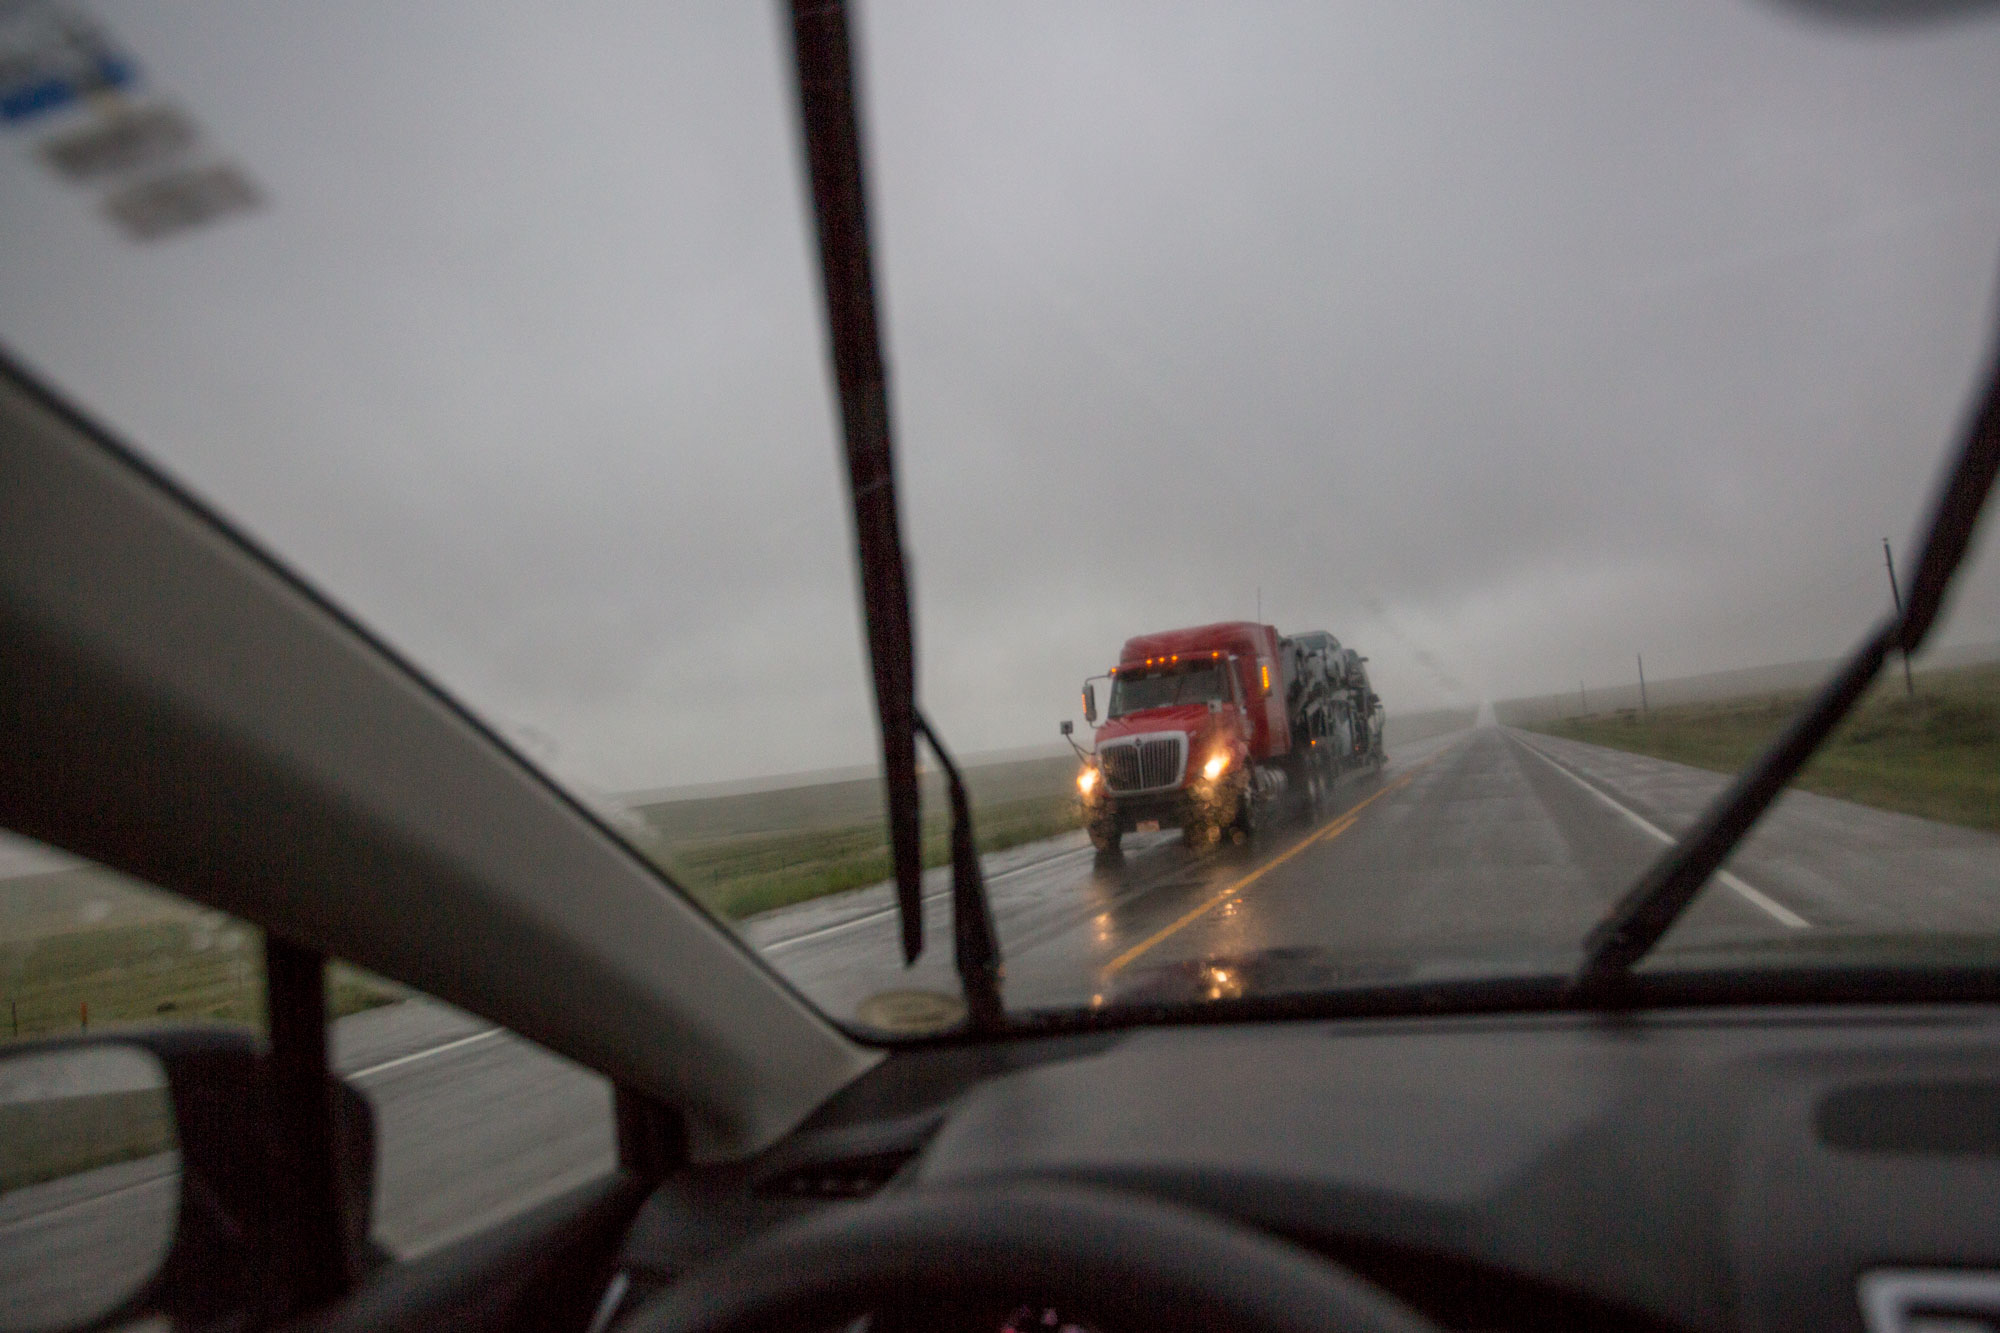 A truck headed north on Hwy 287 near the Eastern Plains town of Lamar on May 20, 2019.